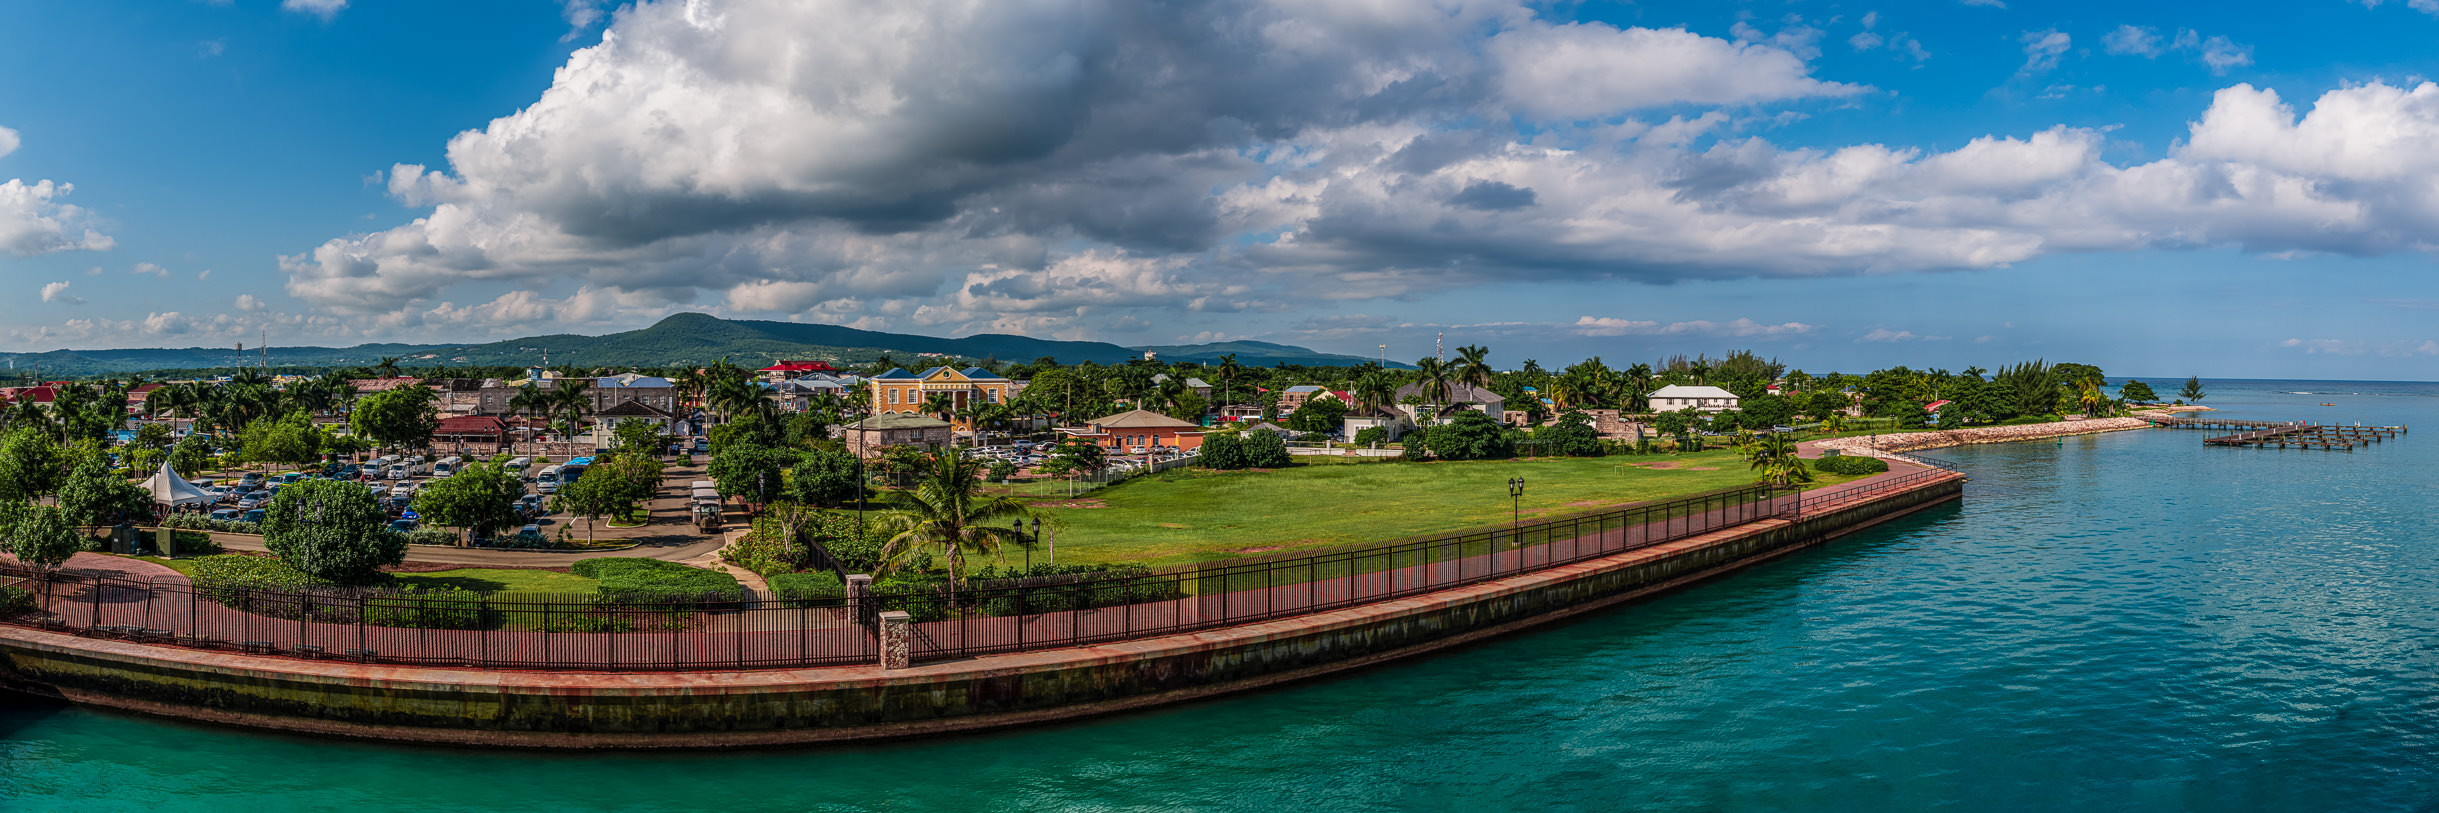 A panoramic cityscape view of Falmouth, Jamaica.